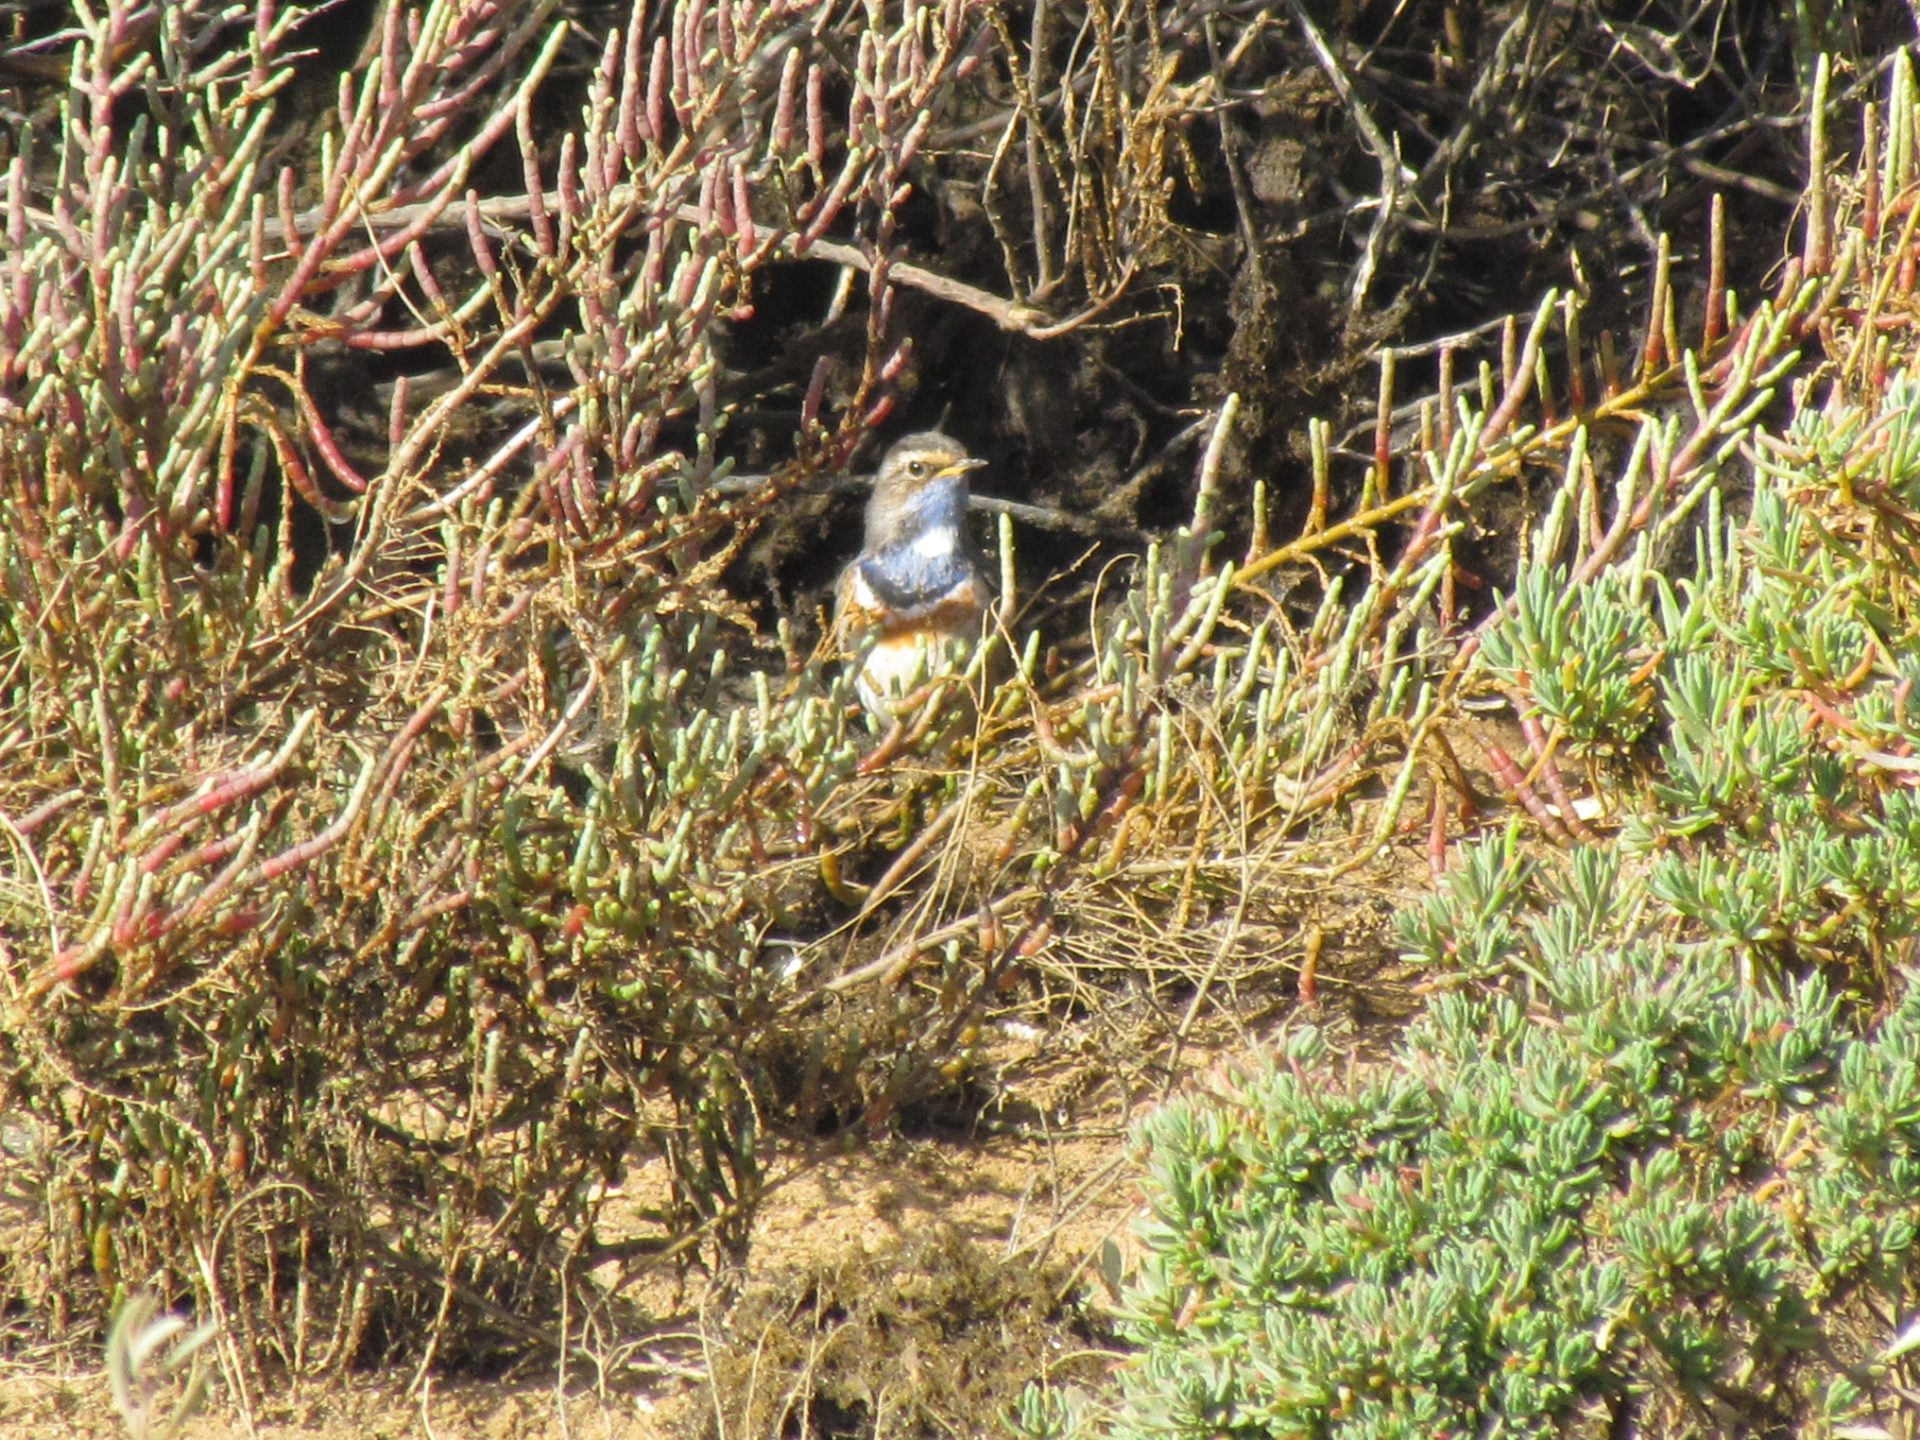 Bluethroat in front of a bush